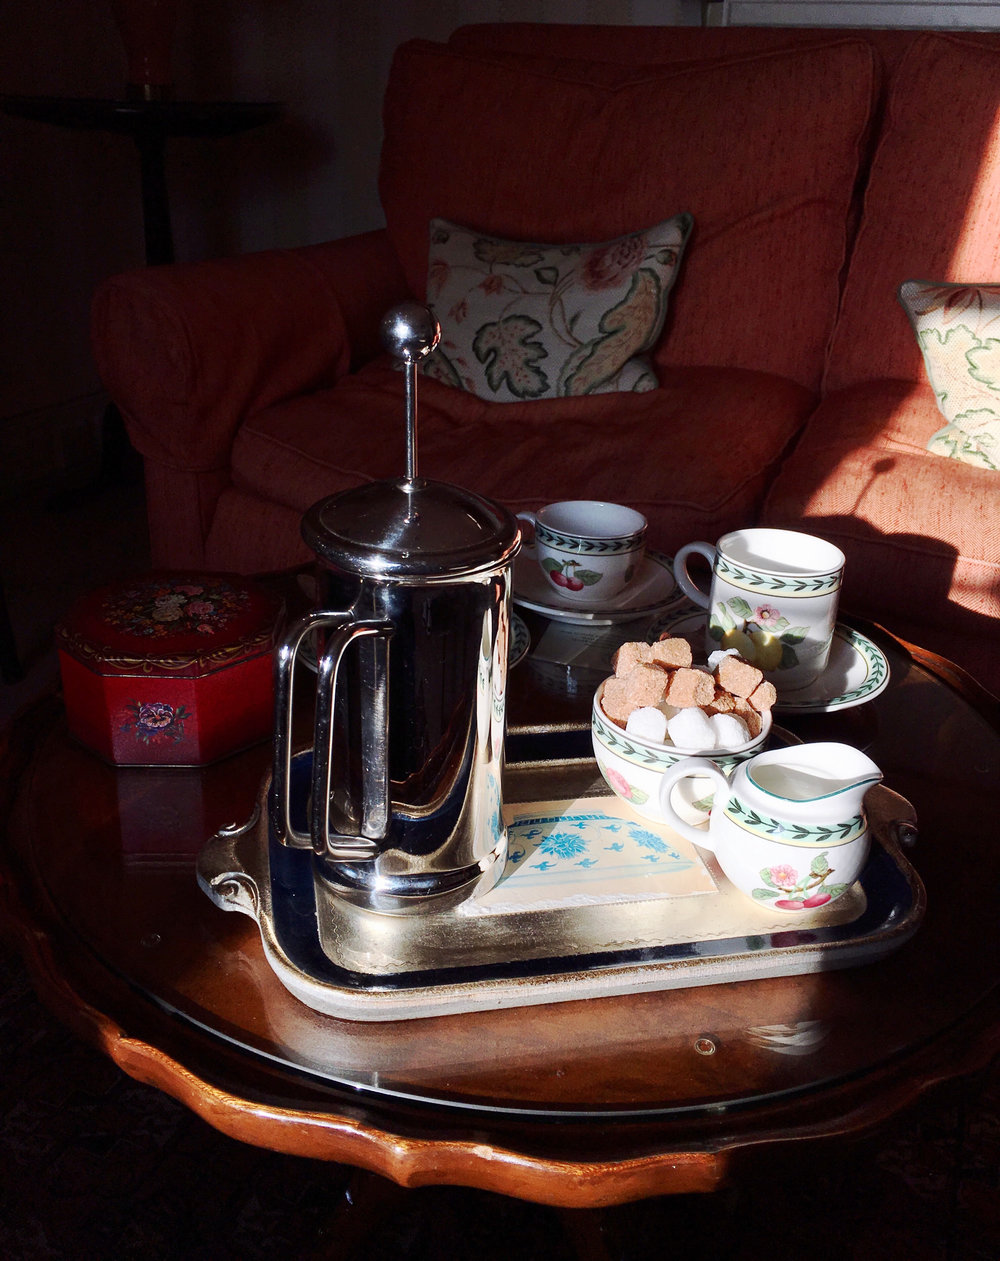 Morning Coffee/Tea - Delivered to your cottage at the break of dawn by the butler.